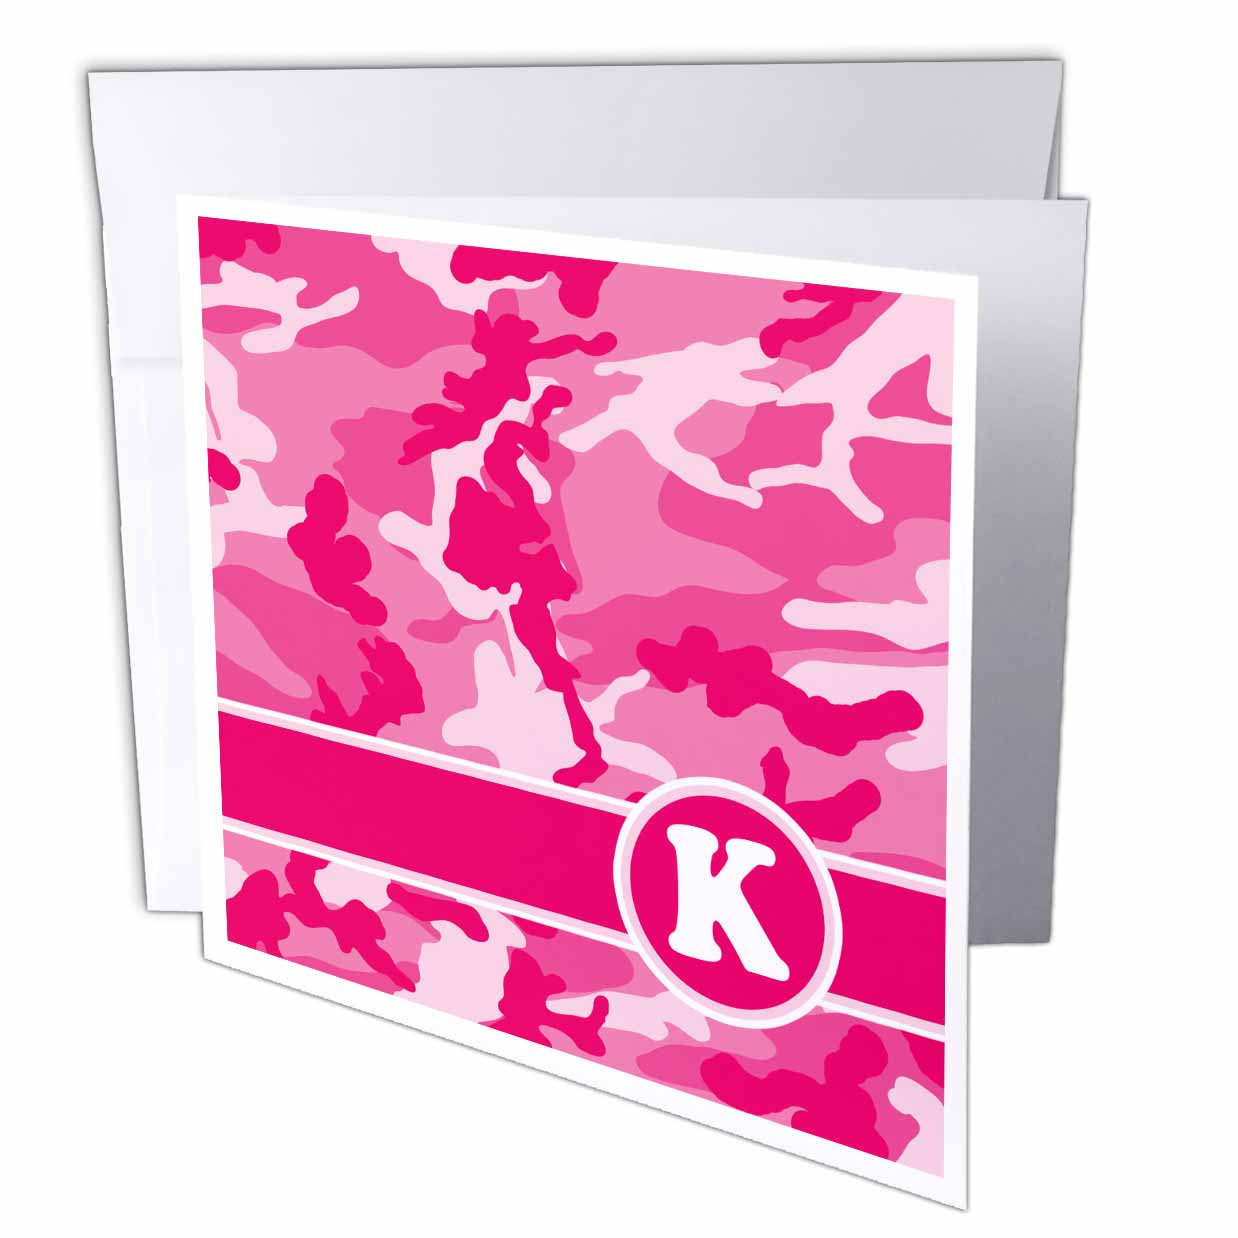 3dRose Cute Pink Camo Camouflage Letter K, Greeting Cards, 6 x 6 inches, set of 12